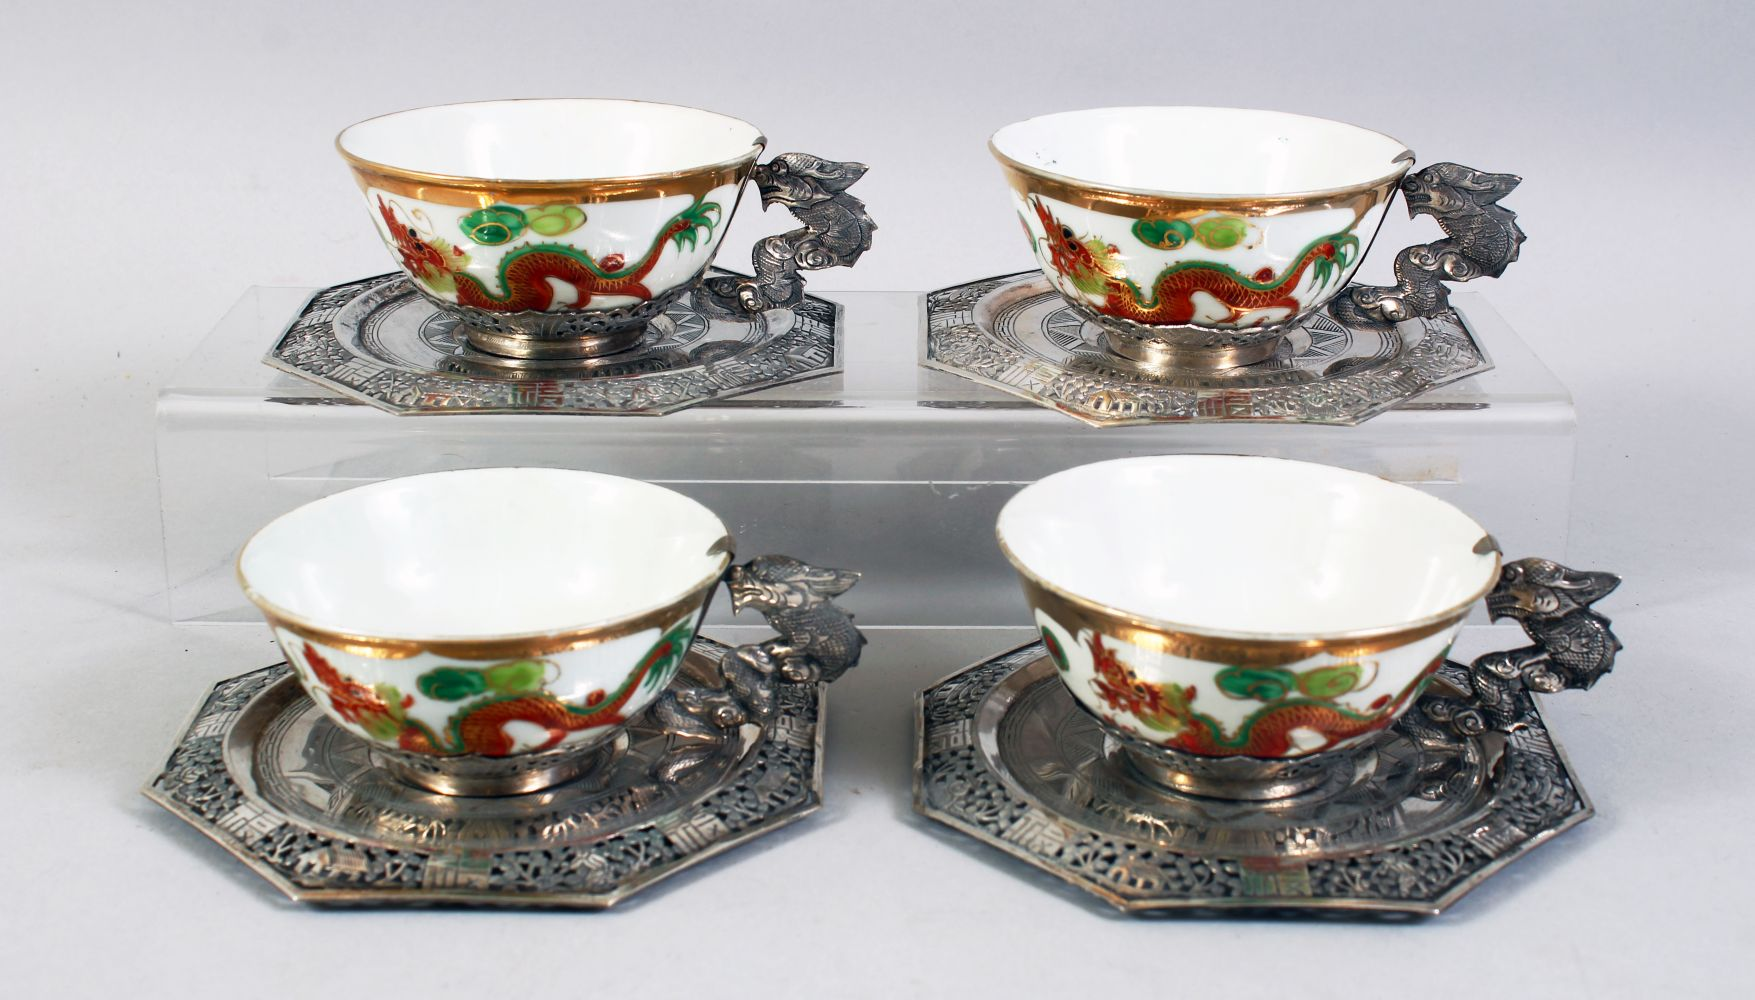 A SET OF FOUR 20TH CENTURY CHINESE FAMILLE ROSE PORCELAIN AND SILVER MOUNTED CUPS & SAUCERS, the